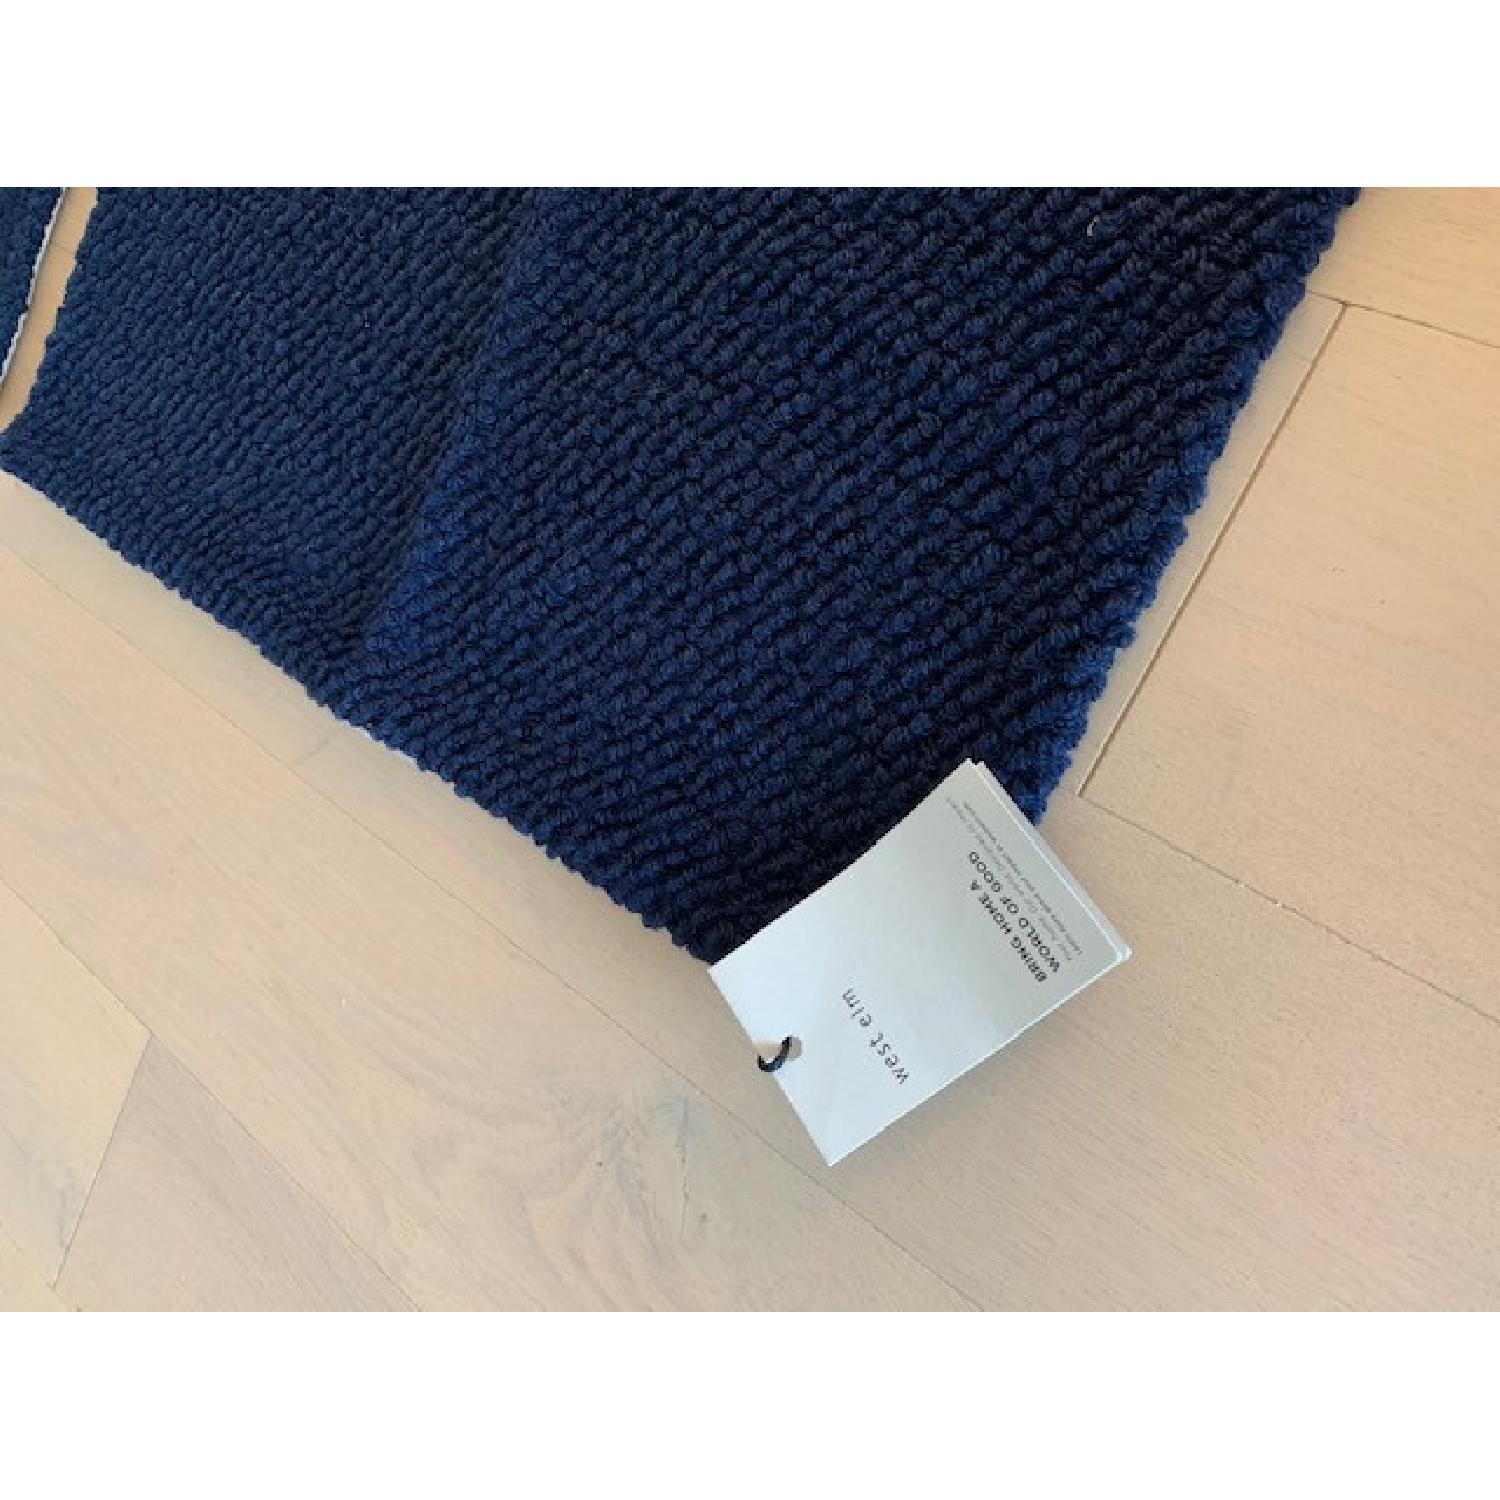 West Elm Boucle Navy Pillow Covers - image-4